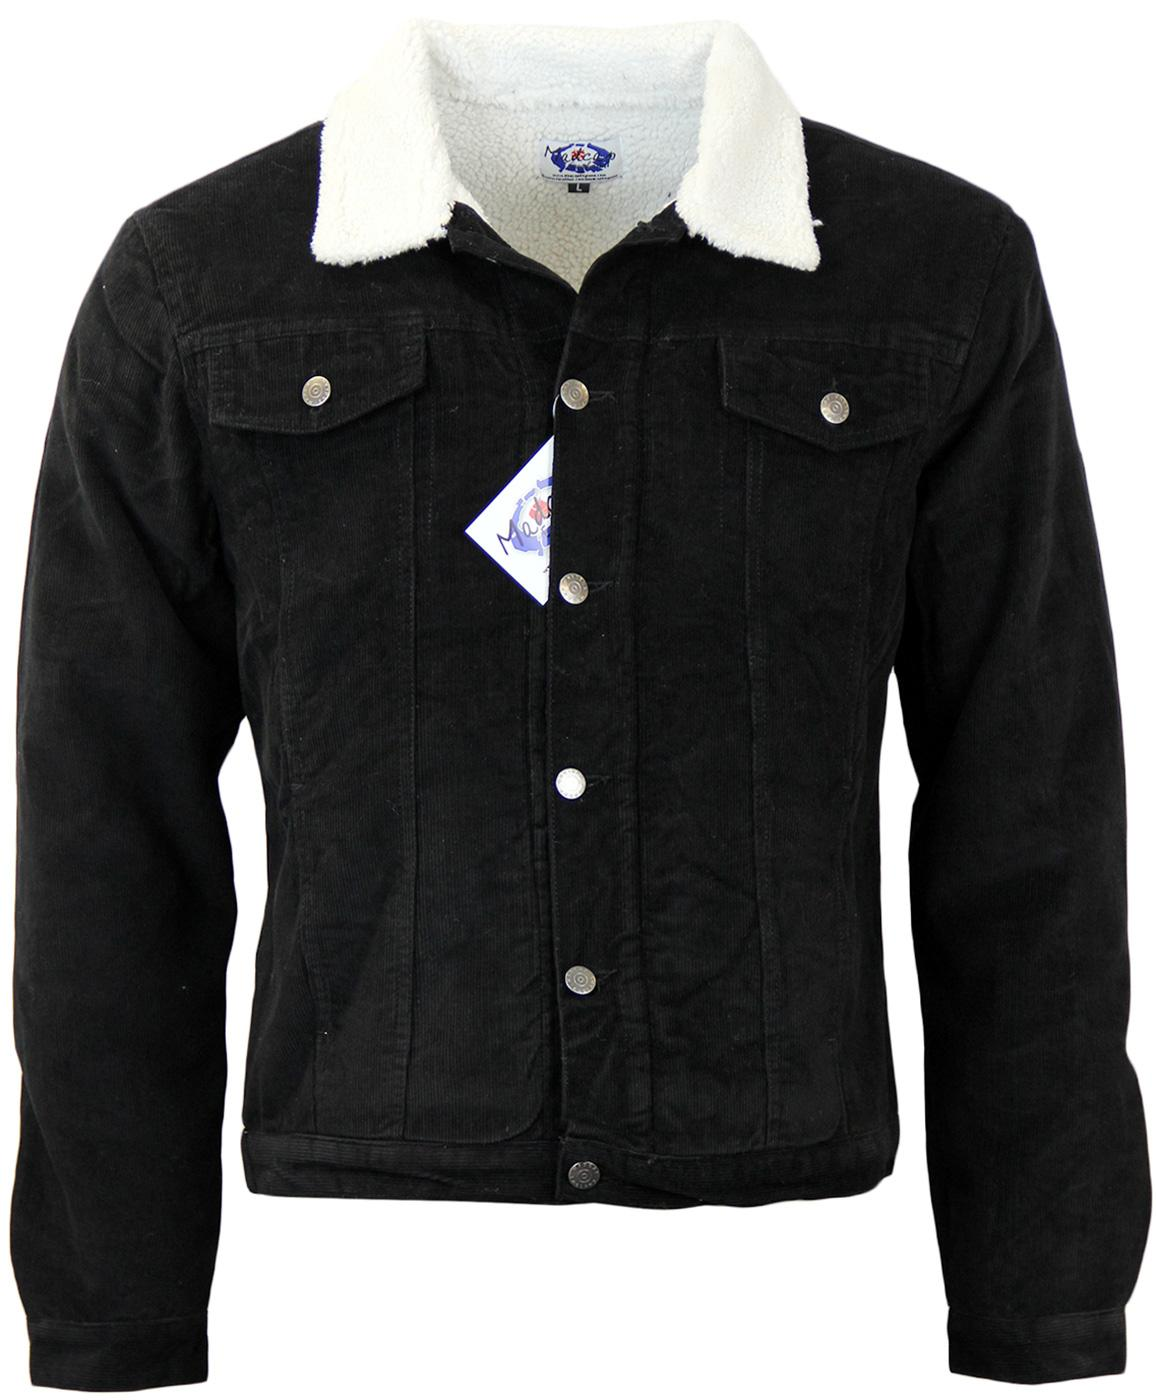 Contender MADCAP ENGLAND Sherpa Lined Jacket BLACK